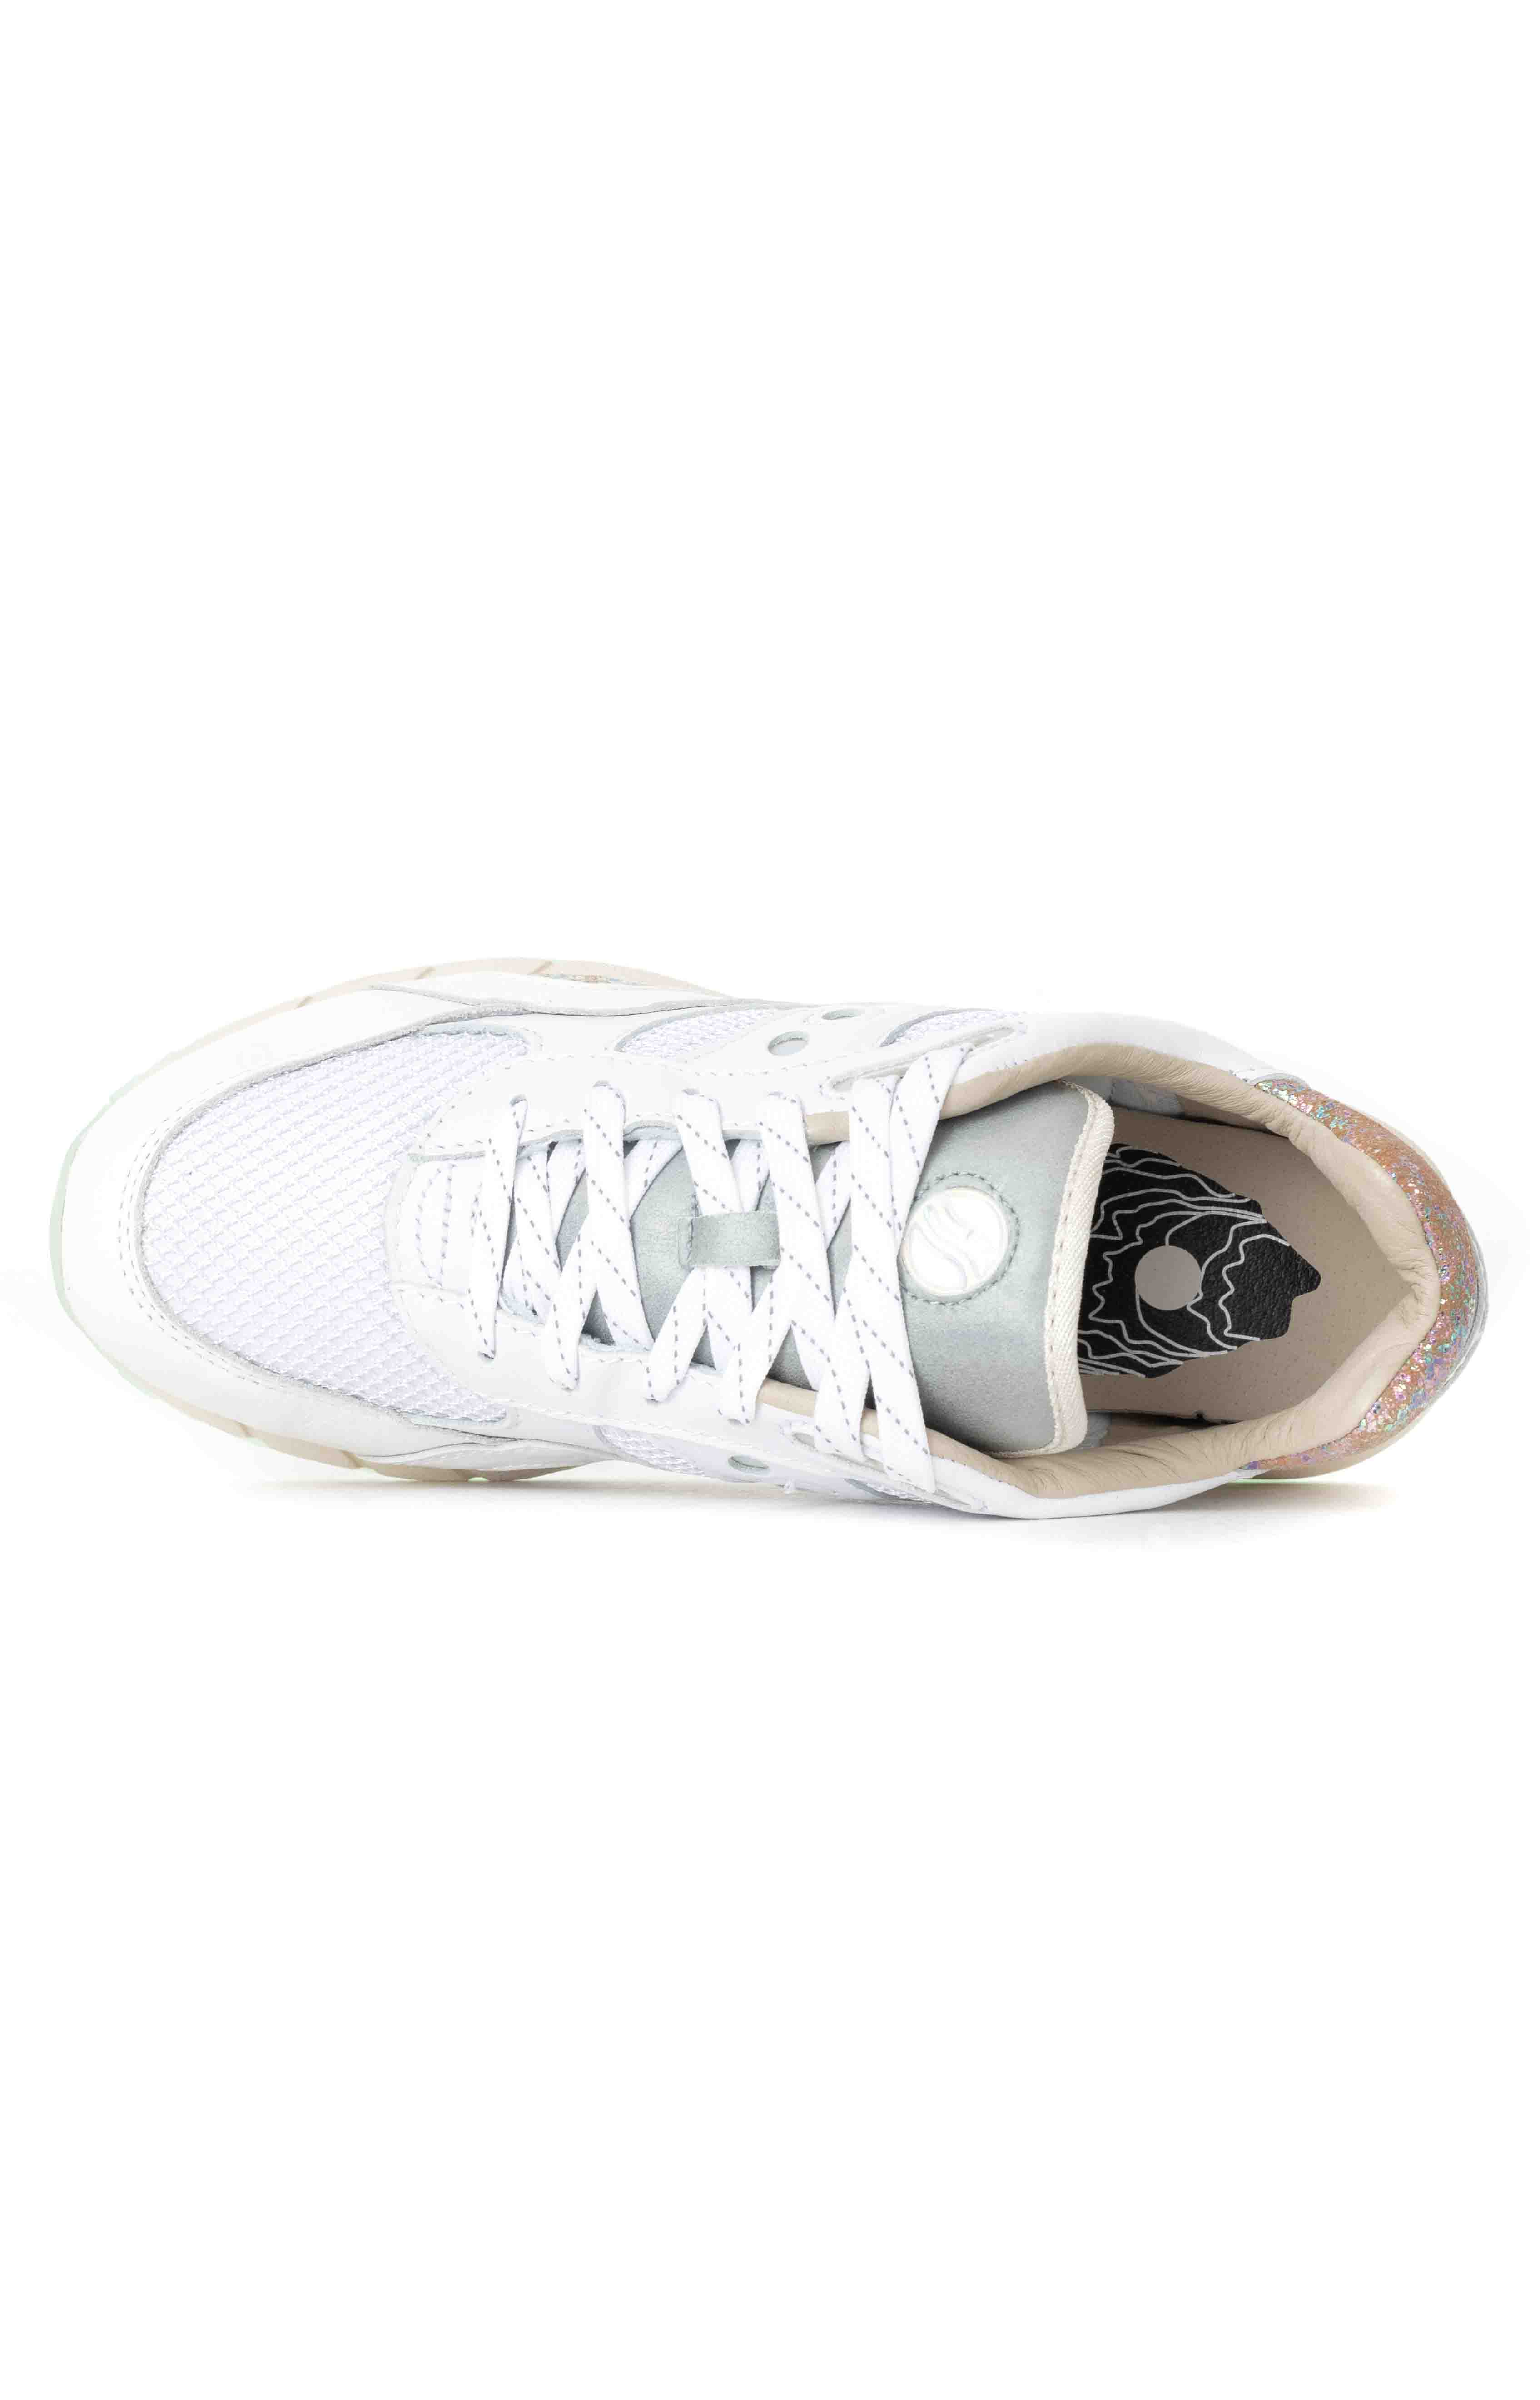 (S70594-1) Shadow 6000 Shoes - Pearl 2